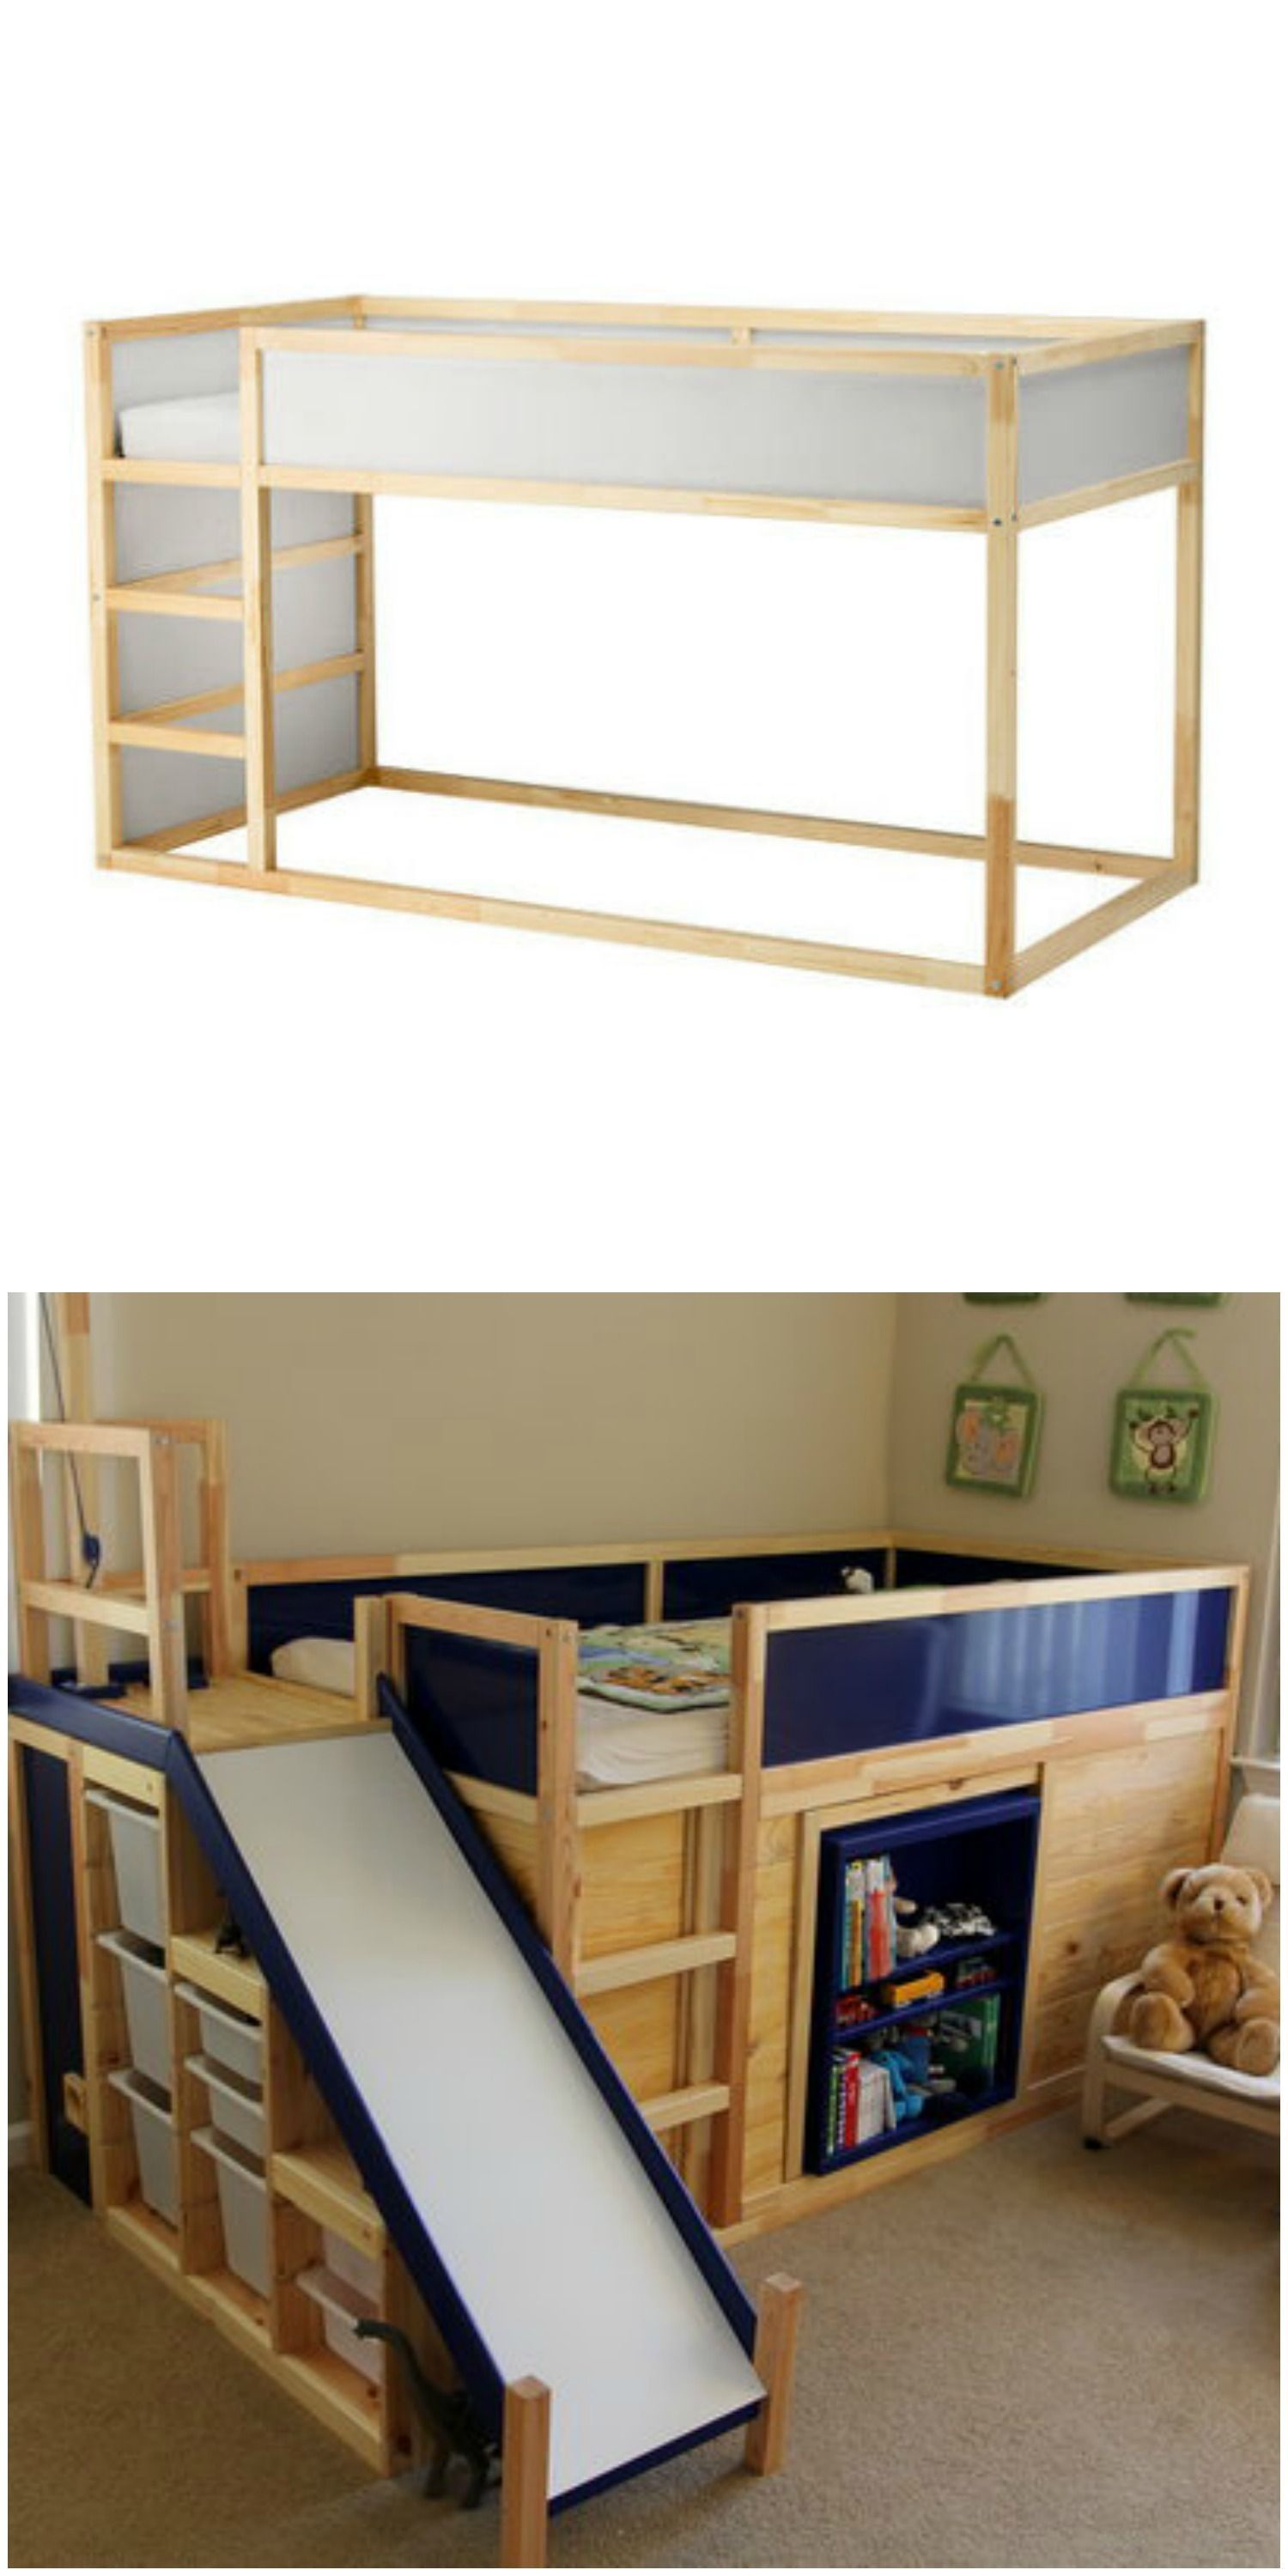 Ikea Hack Loft Bed With A Custom Made Play House | Lovieu0027s Room | Pinterest  | Play Houses, Ikea Hack And Lofts